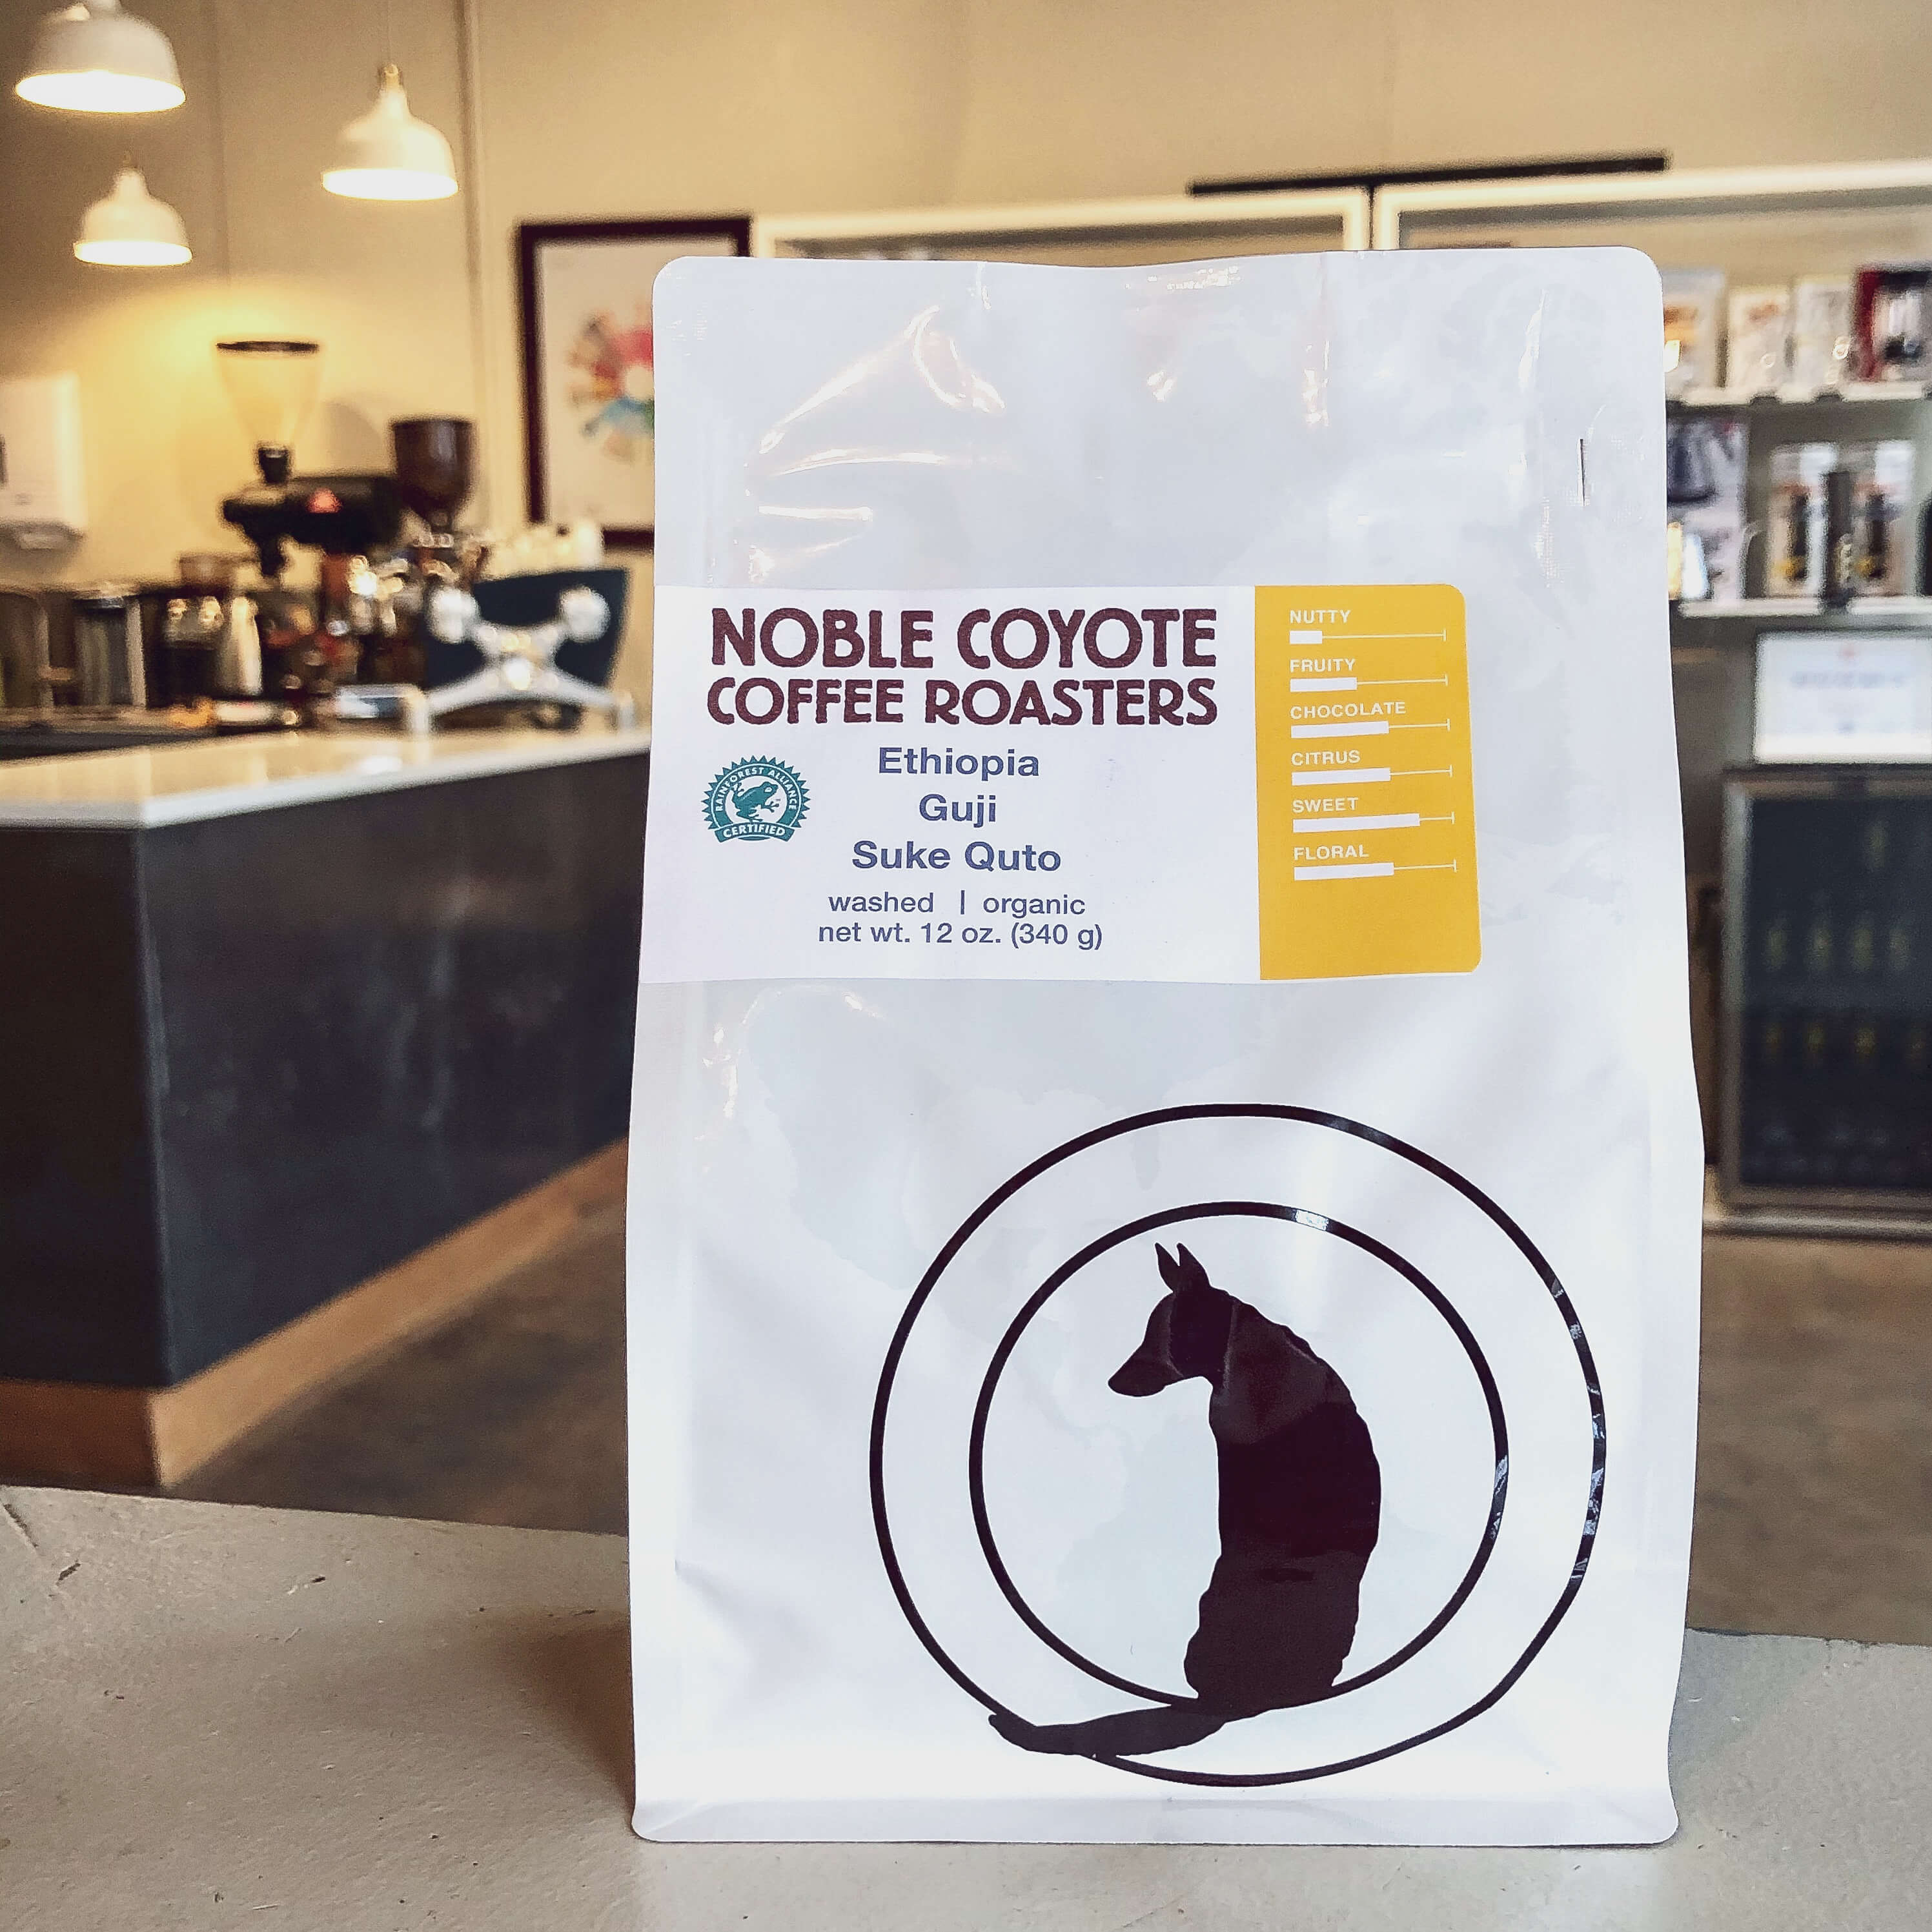 Ethiopia Suke Quto from Noble Coyote Coffee Roasters